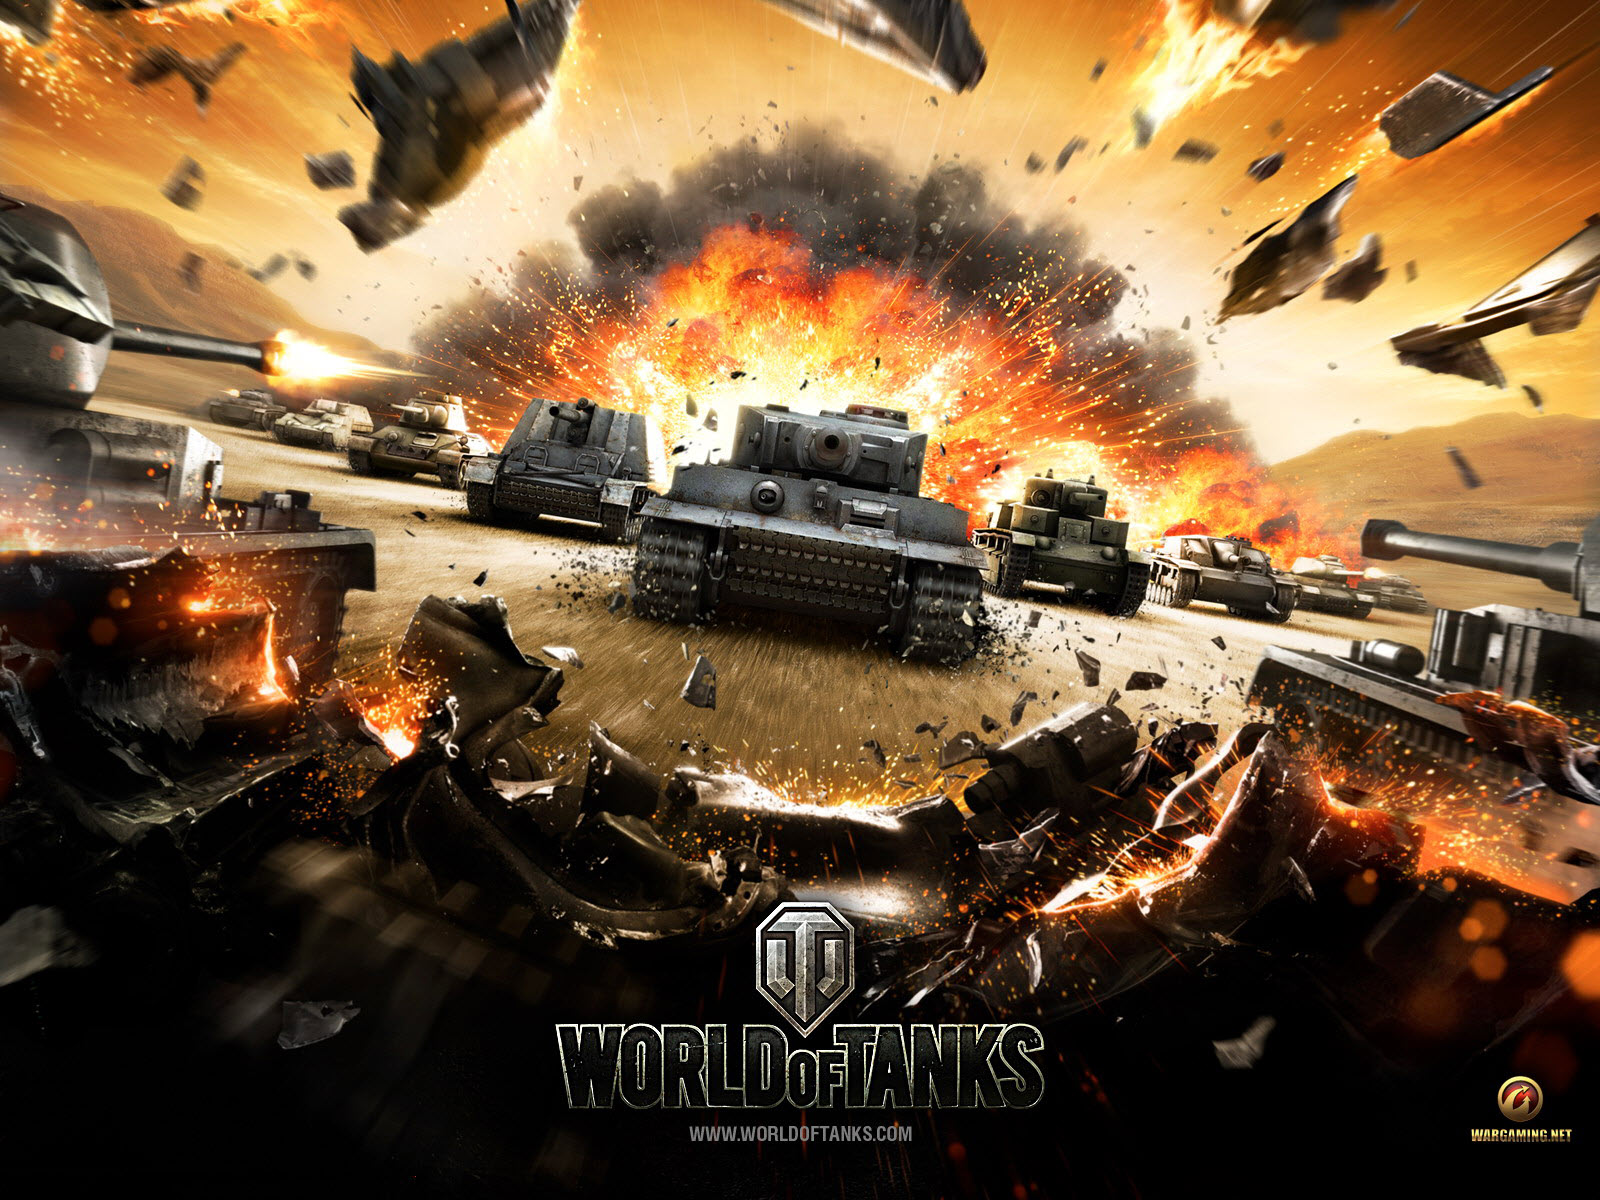 World Of Tanks 1154.22 Kb